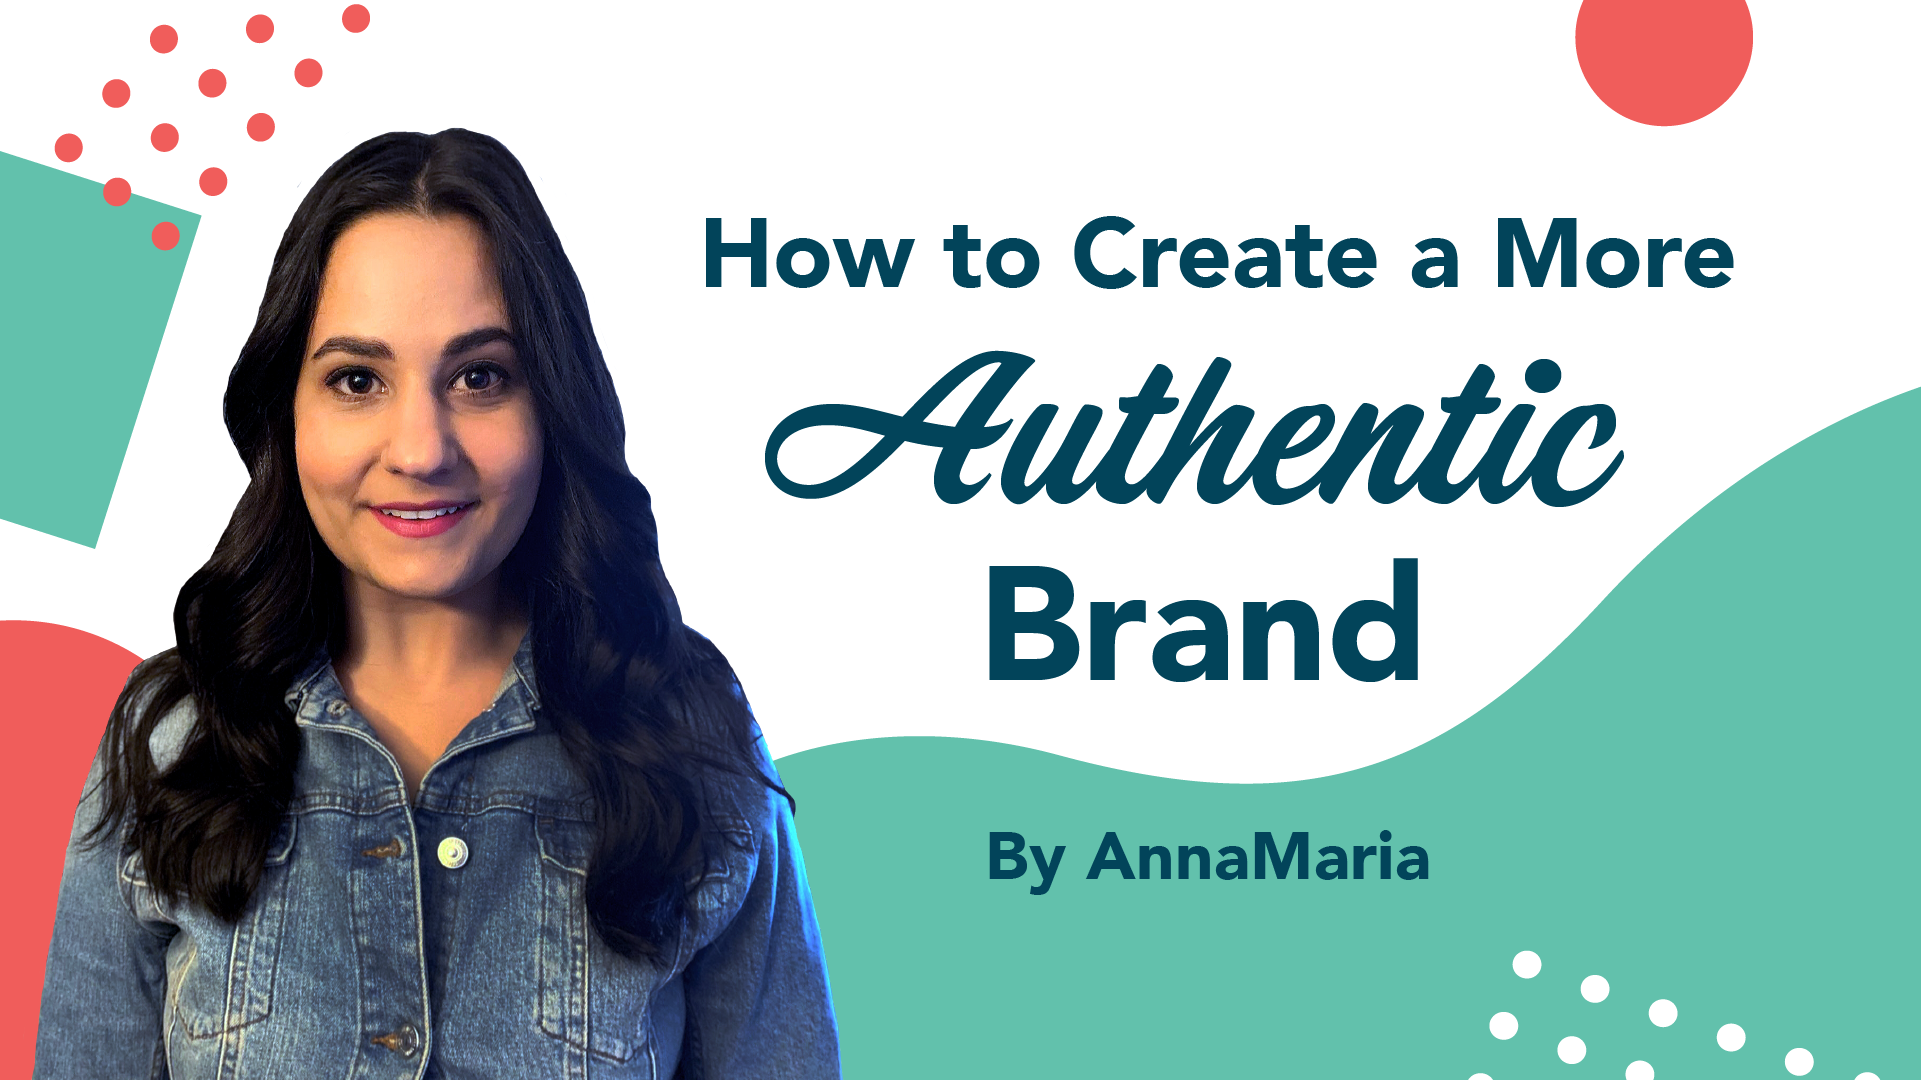 How to Create a More Authentic Brand